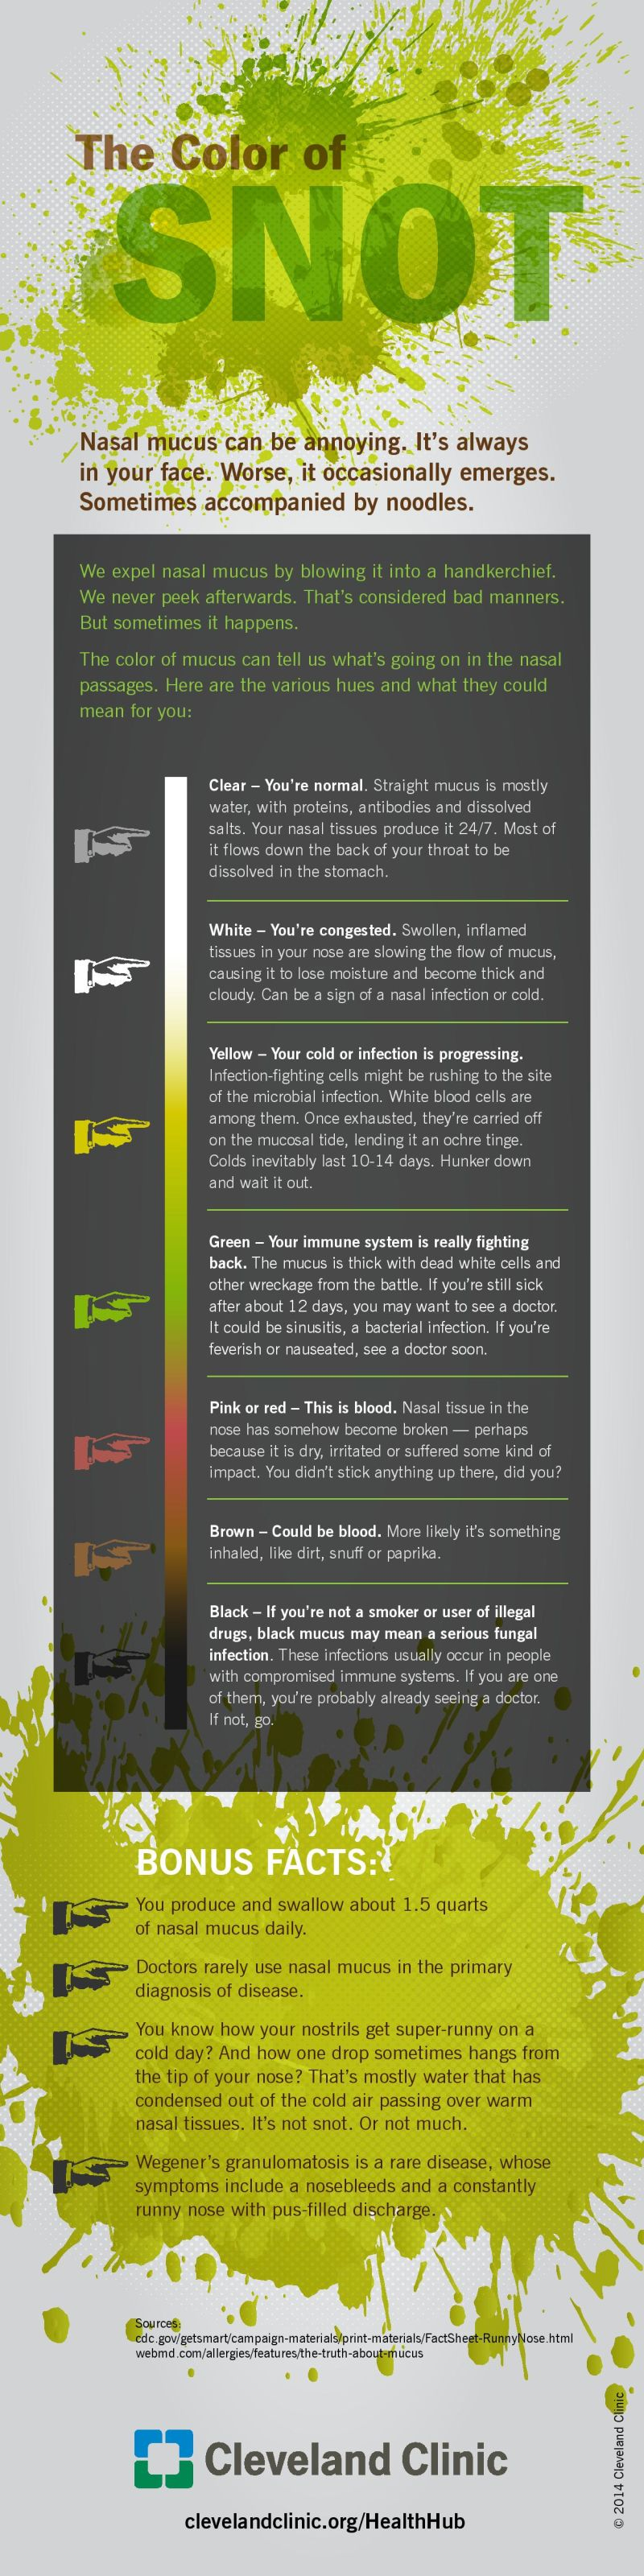 What the Color of Your Snot Really Means | Cleveland Clinic